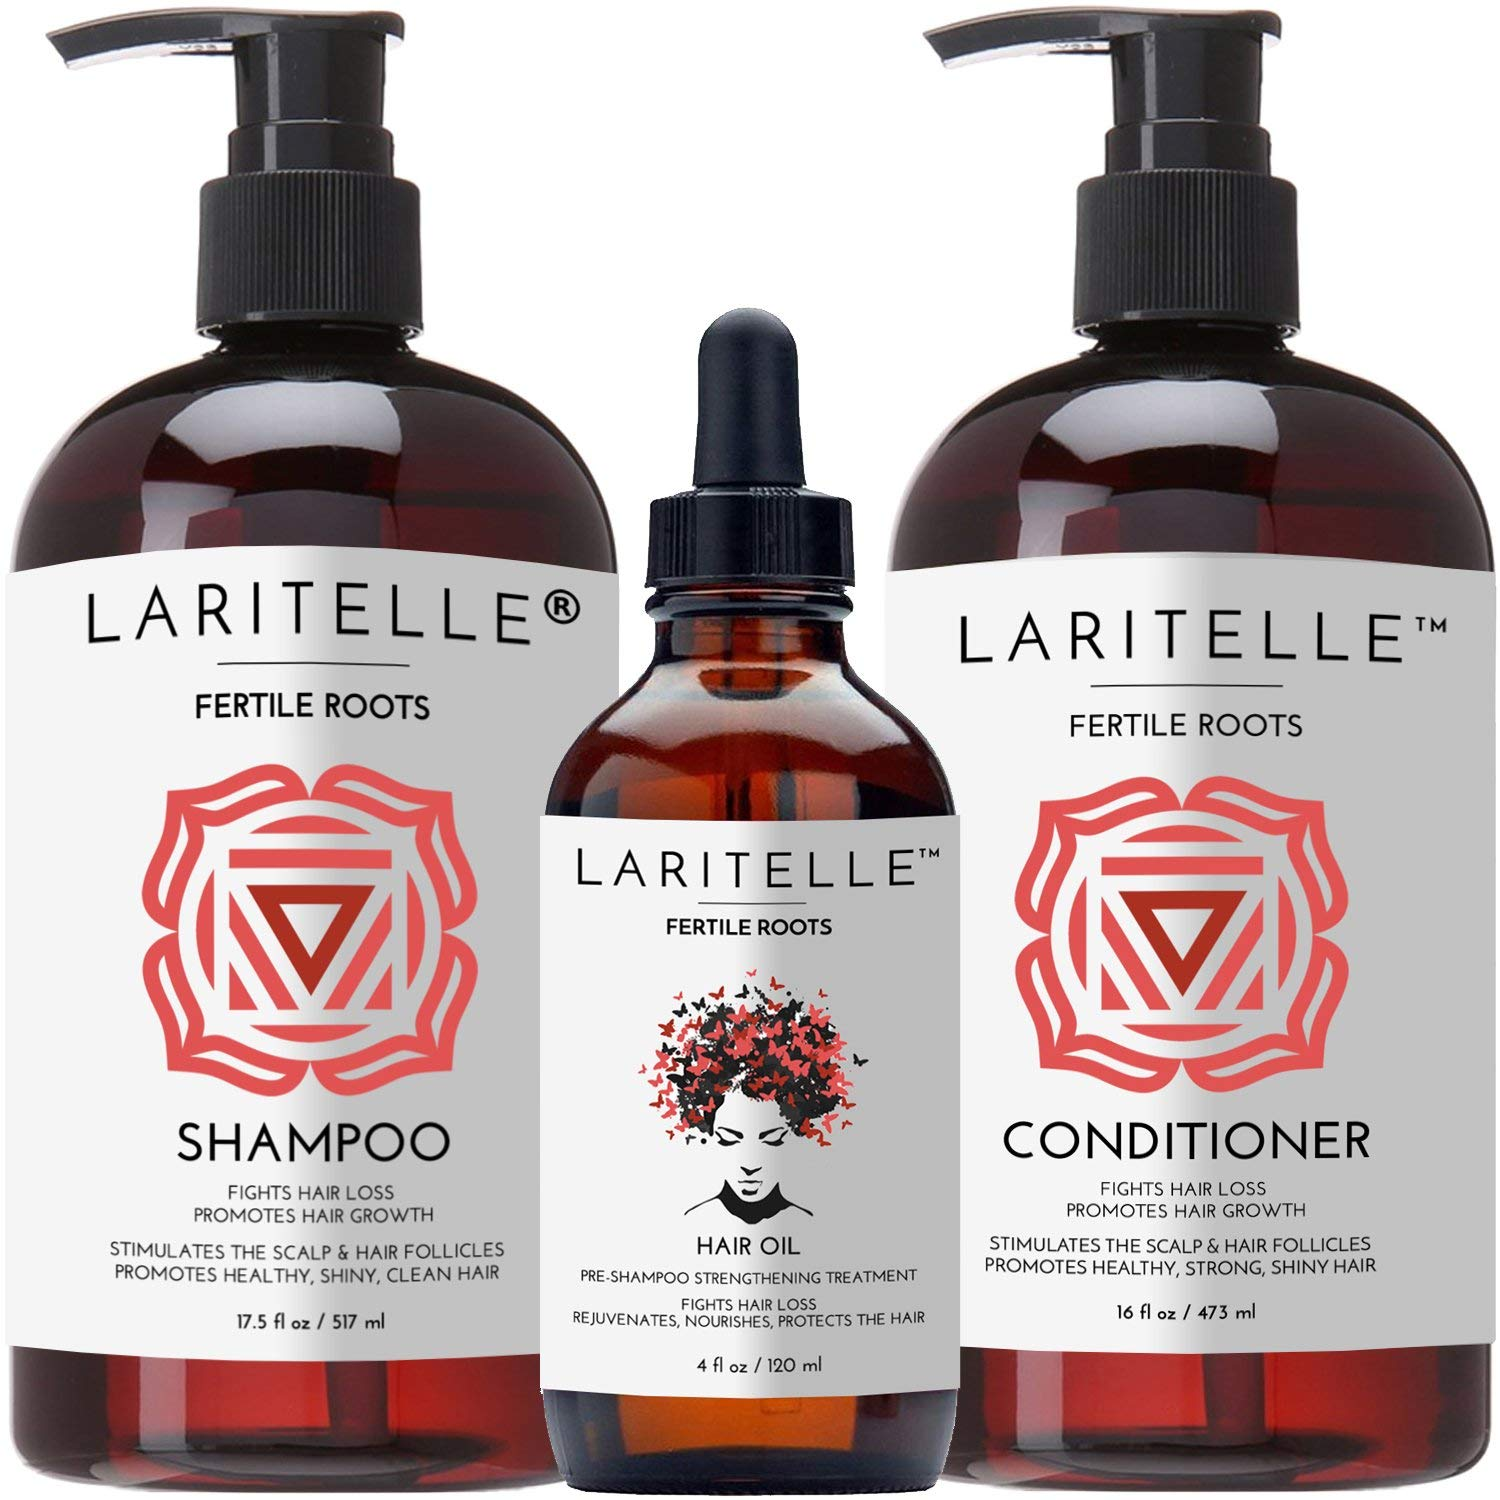 Laritelle Organic Hair Growth Set | Shampoo 17 oz + Conditioner 16 oz + Hair Loss Treatment 4 oz | Ayurvedic Herbs, Lavender, Ginger, Rosemary | NO GMO, Sulfates, Gluten, Alcohol, Parabens, Phthalates